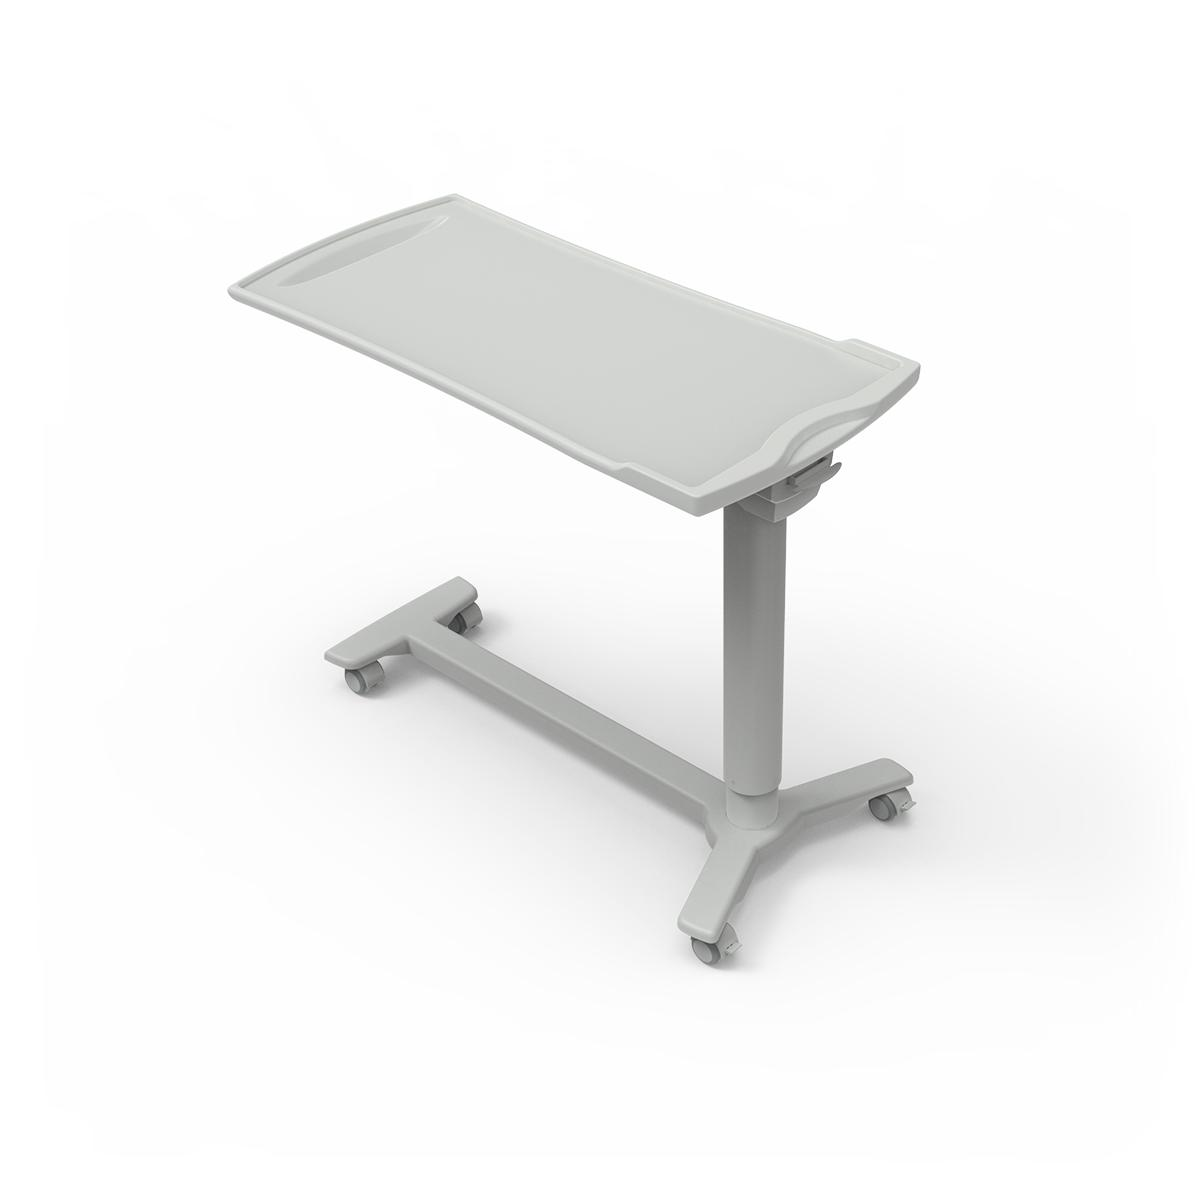 Overbed Table TA270 with h-shaped base and plastic top